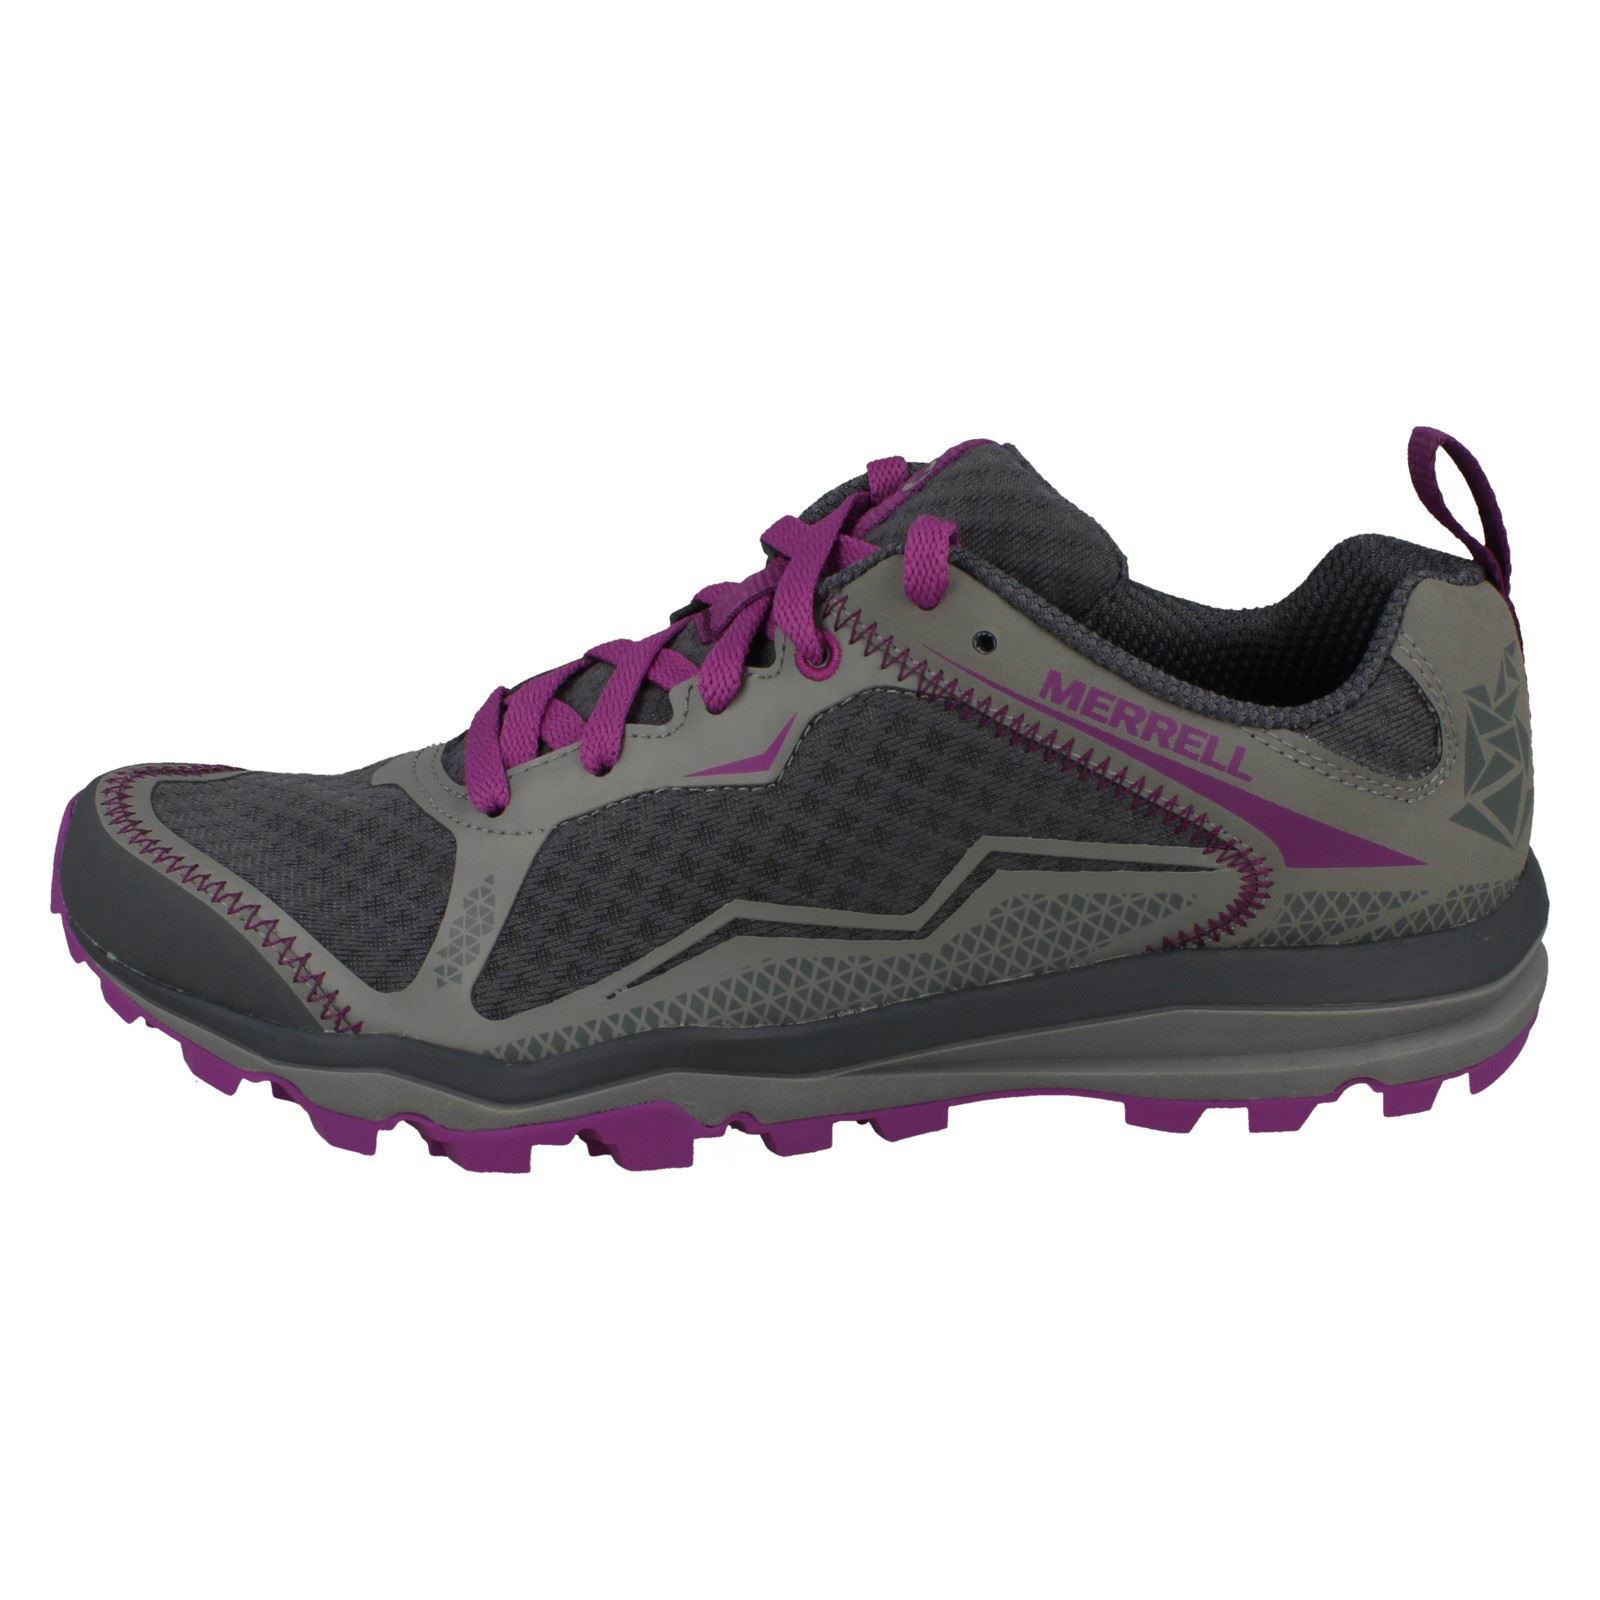 Ladies All Out Crush Light Light Weight Running Trainers By Merrell £39.00